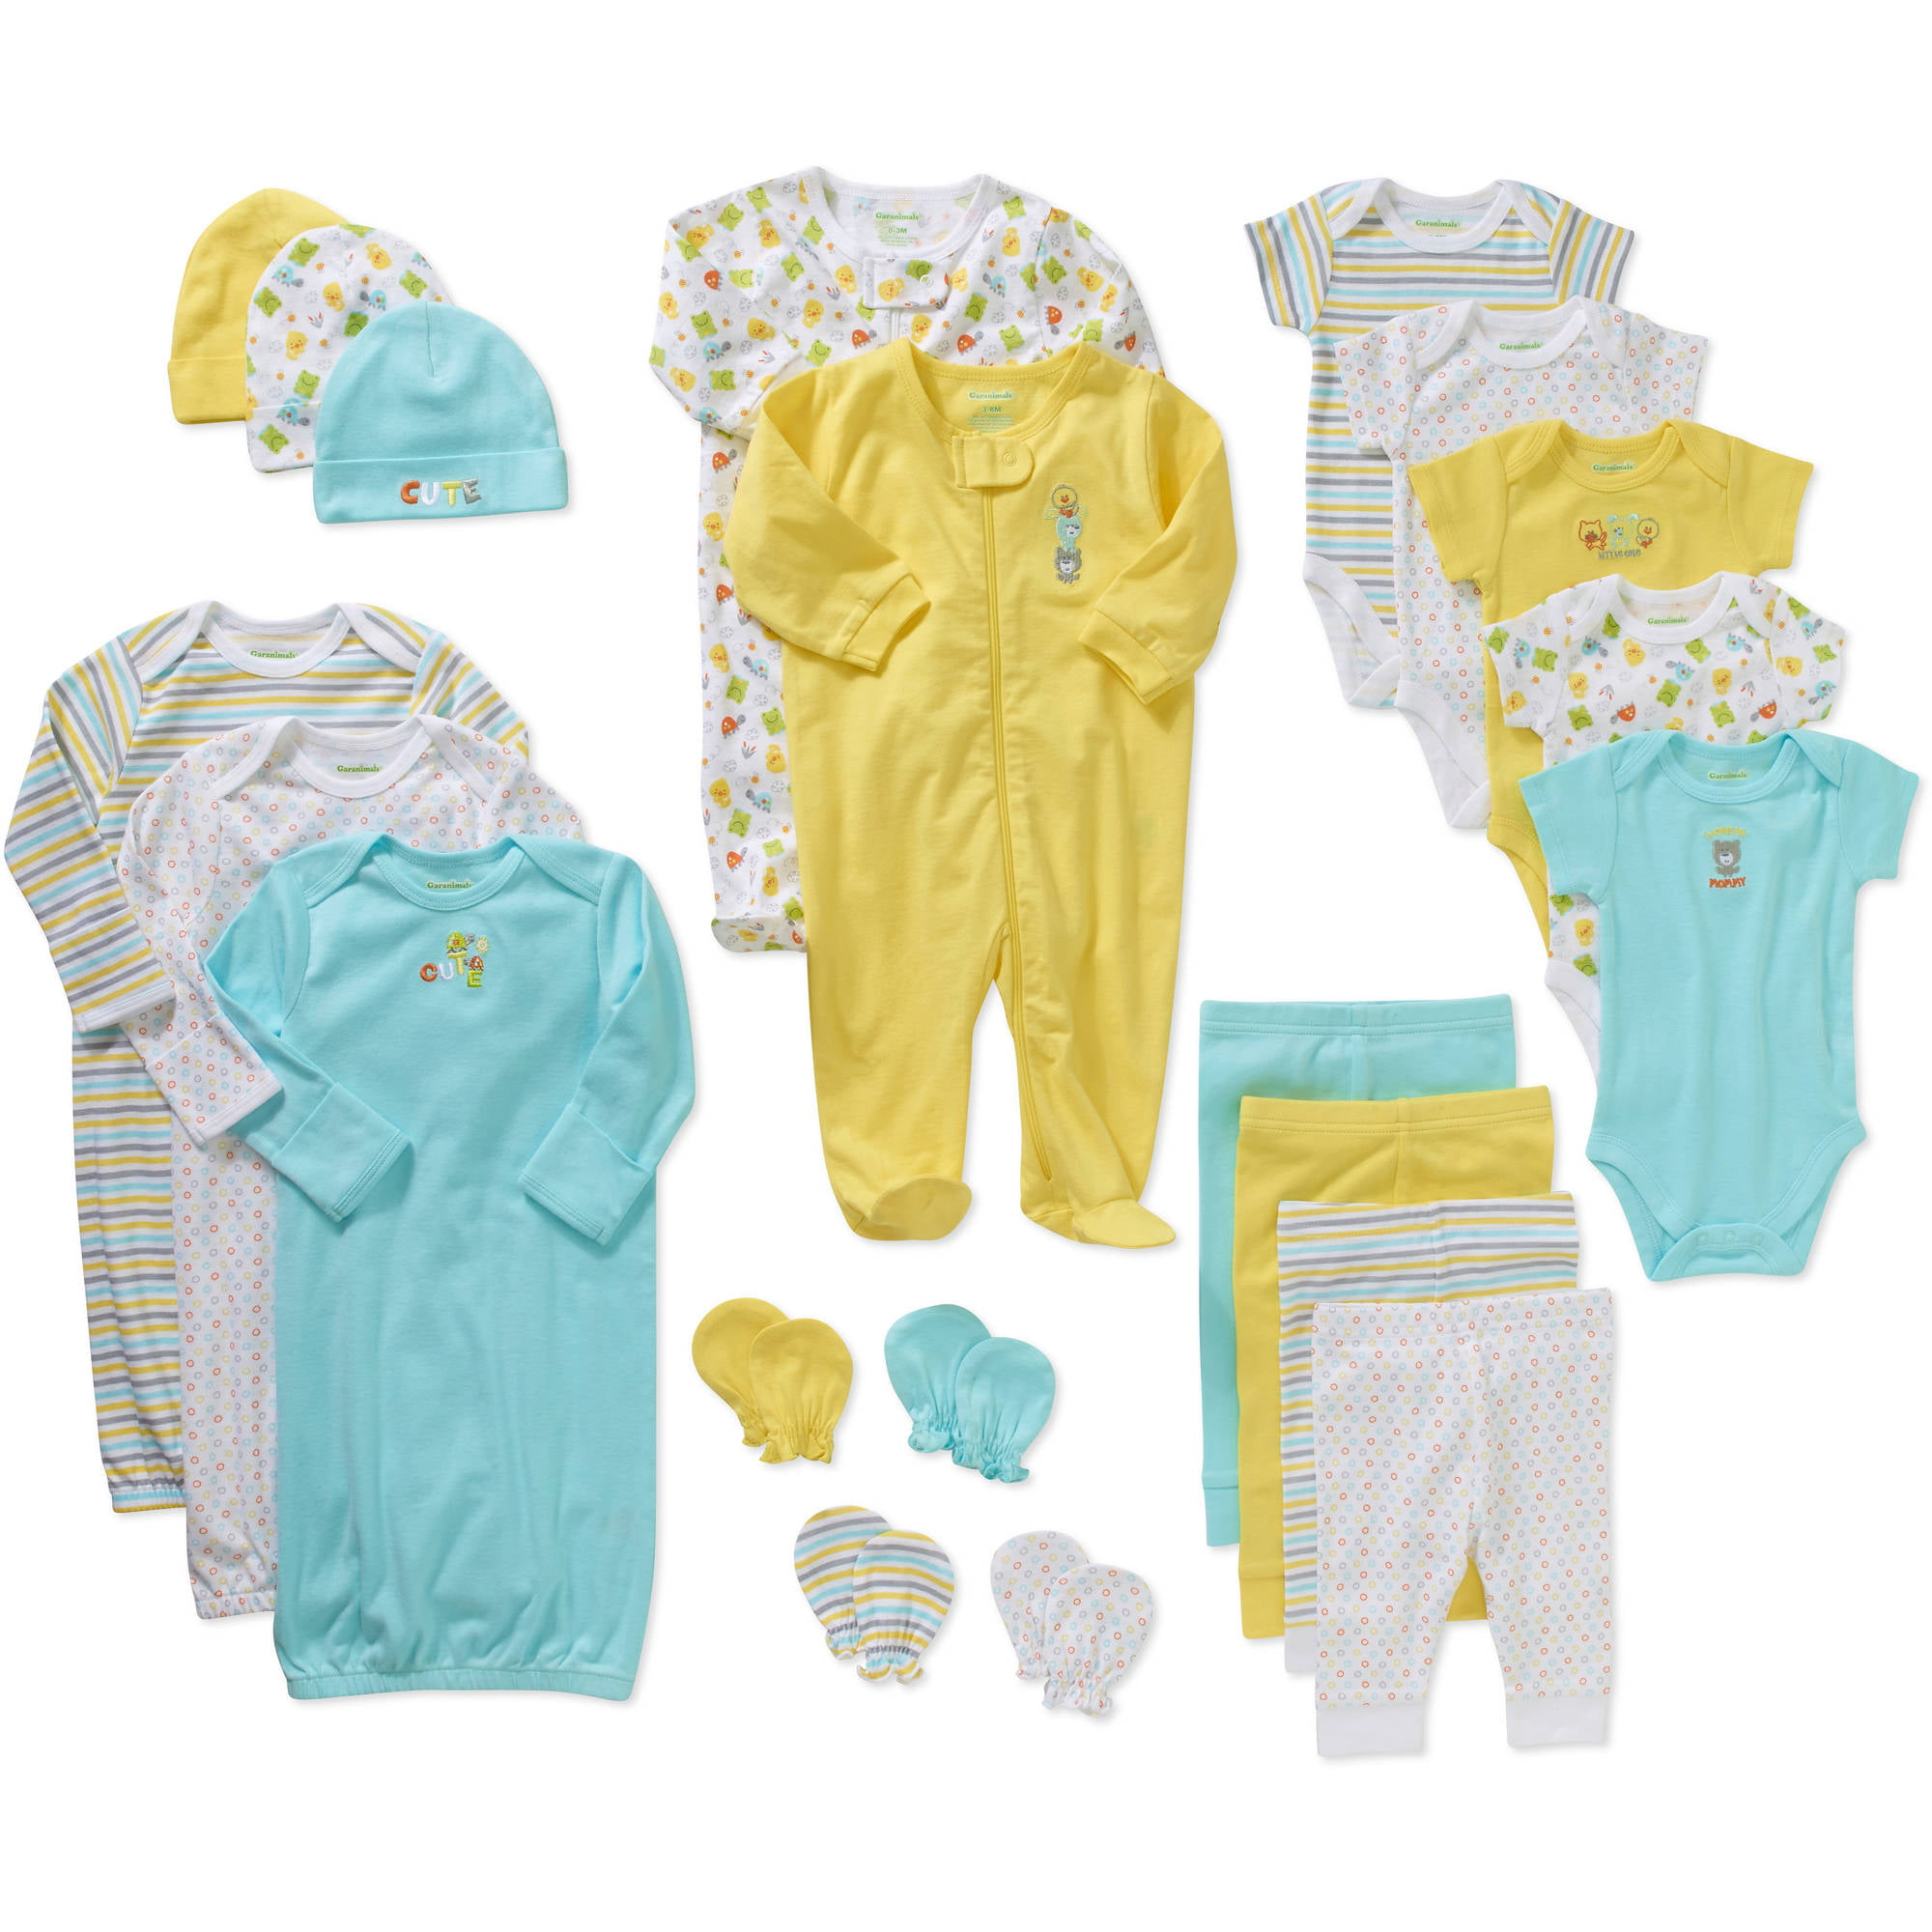 cf2308b1744e7 Luvable Friends - Newborn Baby Boy Deluxe Baby Shower Gift Set, 24pc -  Walmart.com